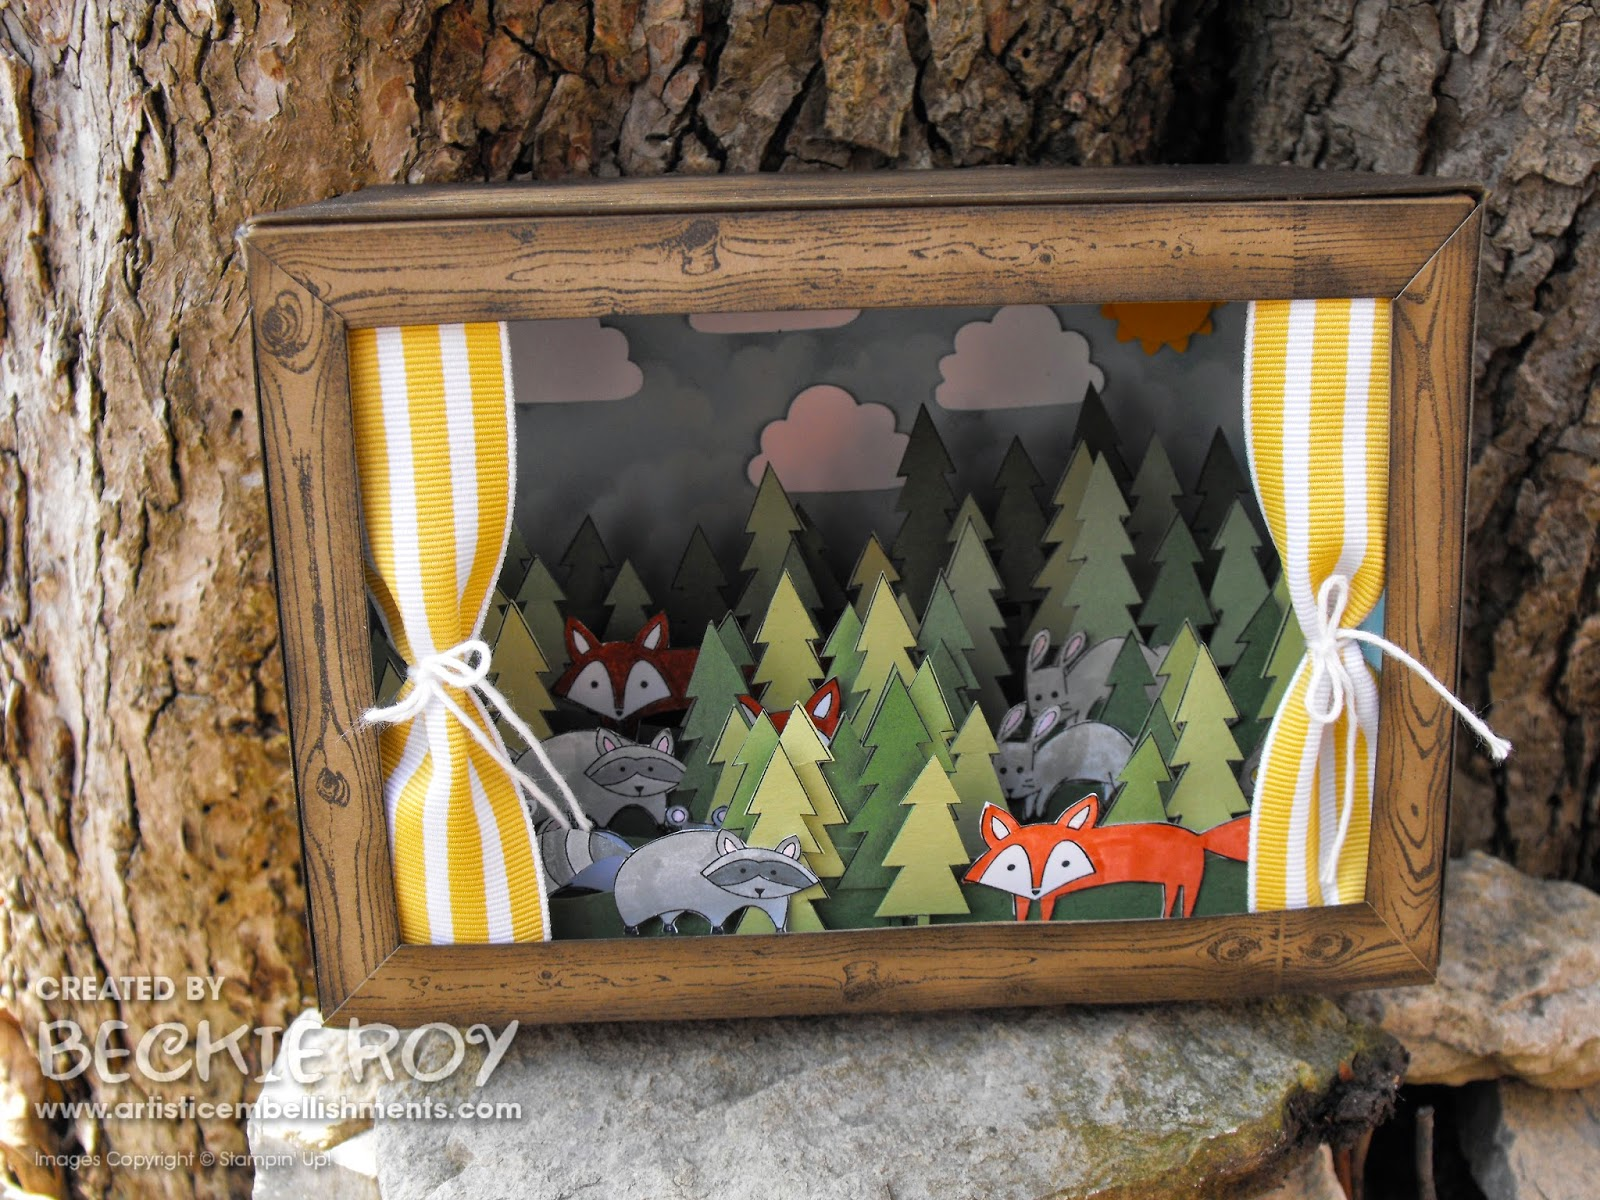 Artistic Embellishments Life In The Forest Diorama